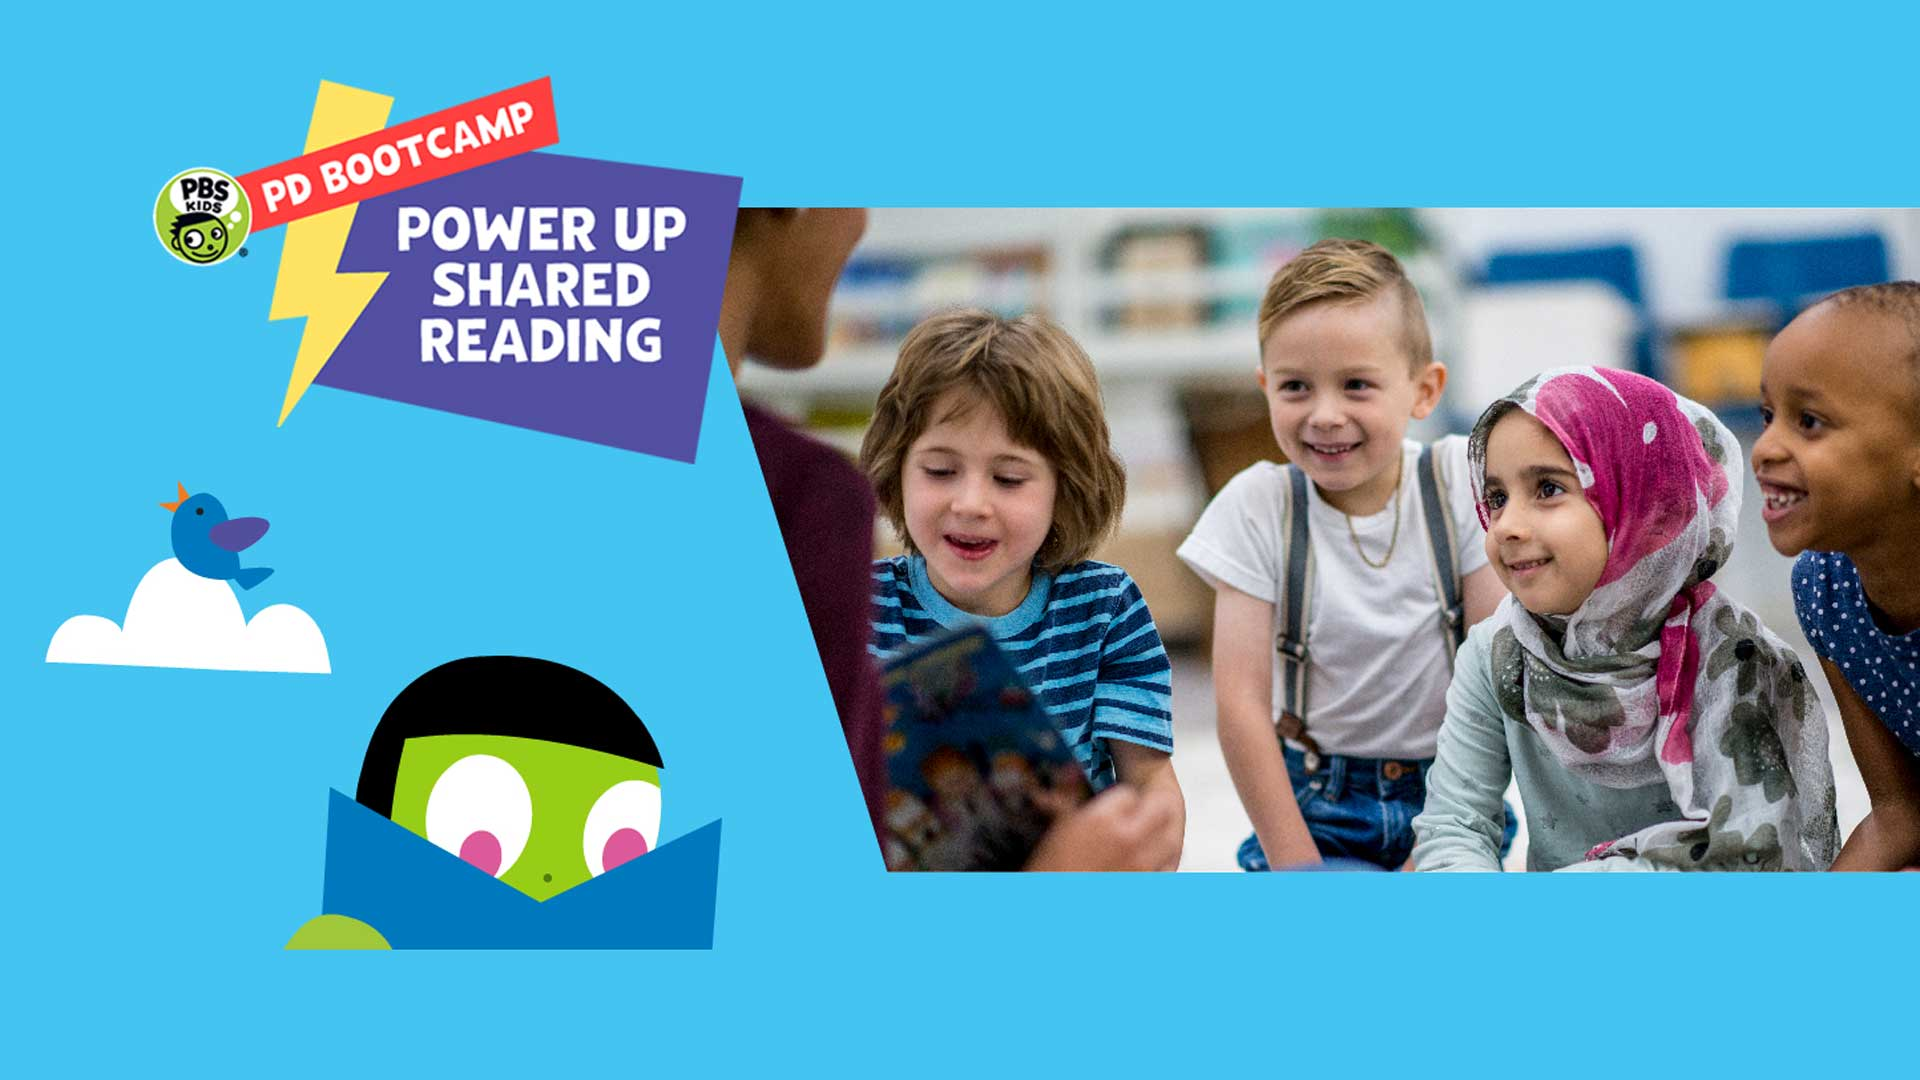 Power Up Shared Reading experience is a five-day bootcamp built to give K-3 teachers a crash course in Shared Reading.